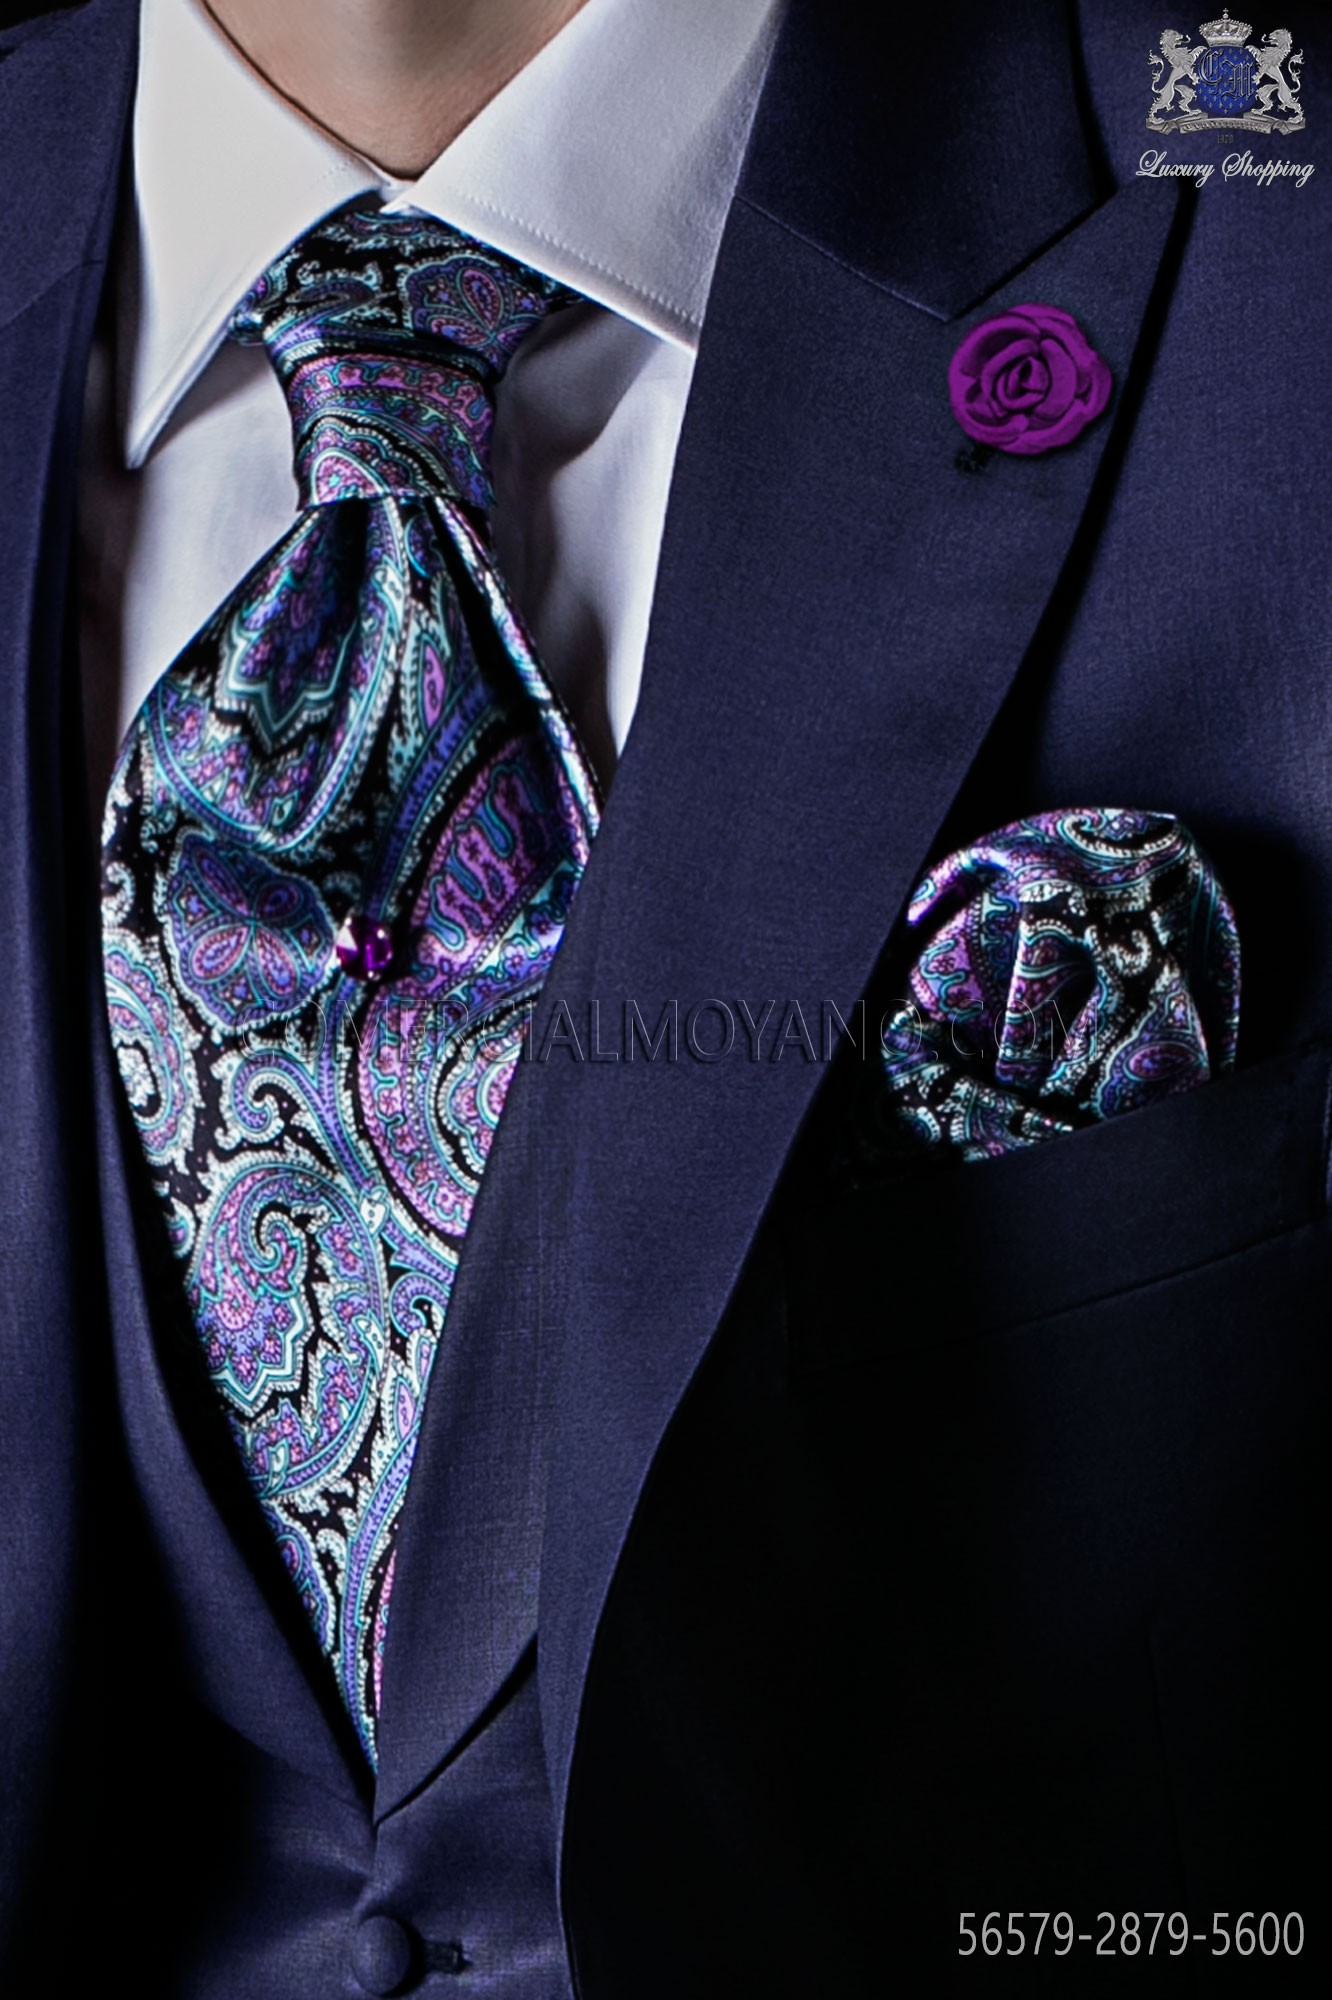 e3d9a885c0f4 Pure silk paisley tie and matching pocket square. Loading zoom